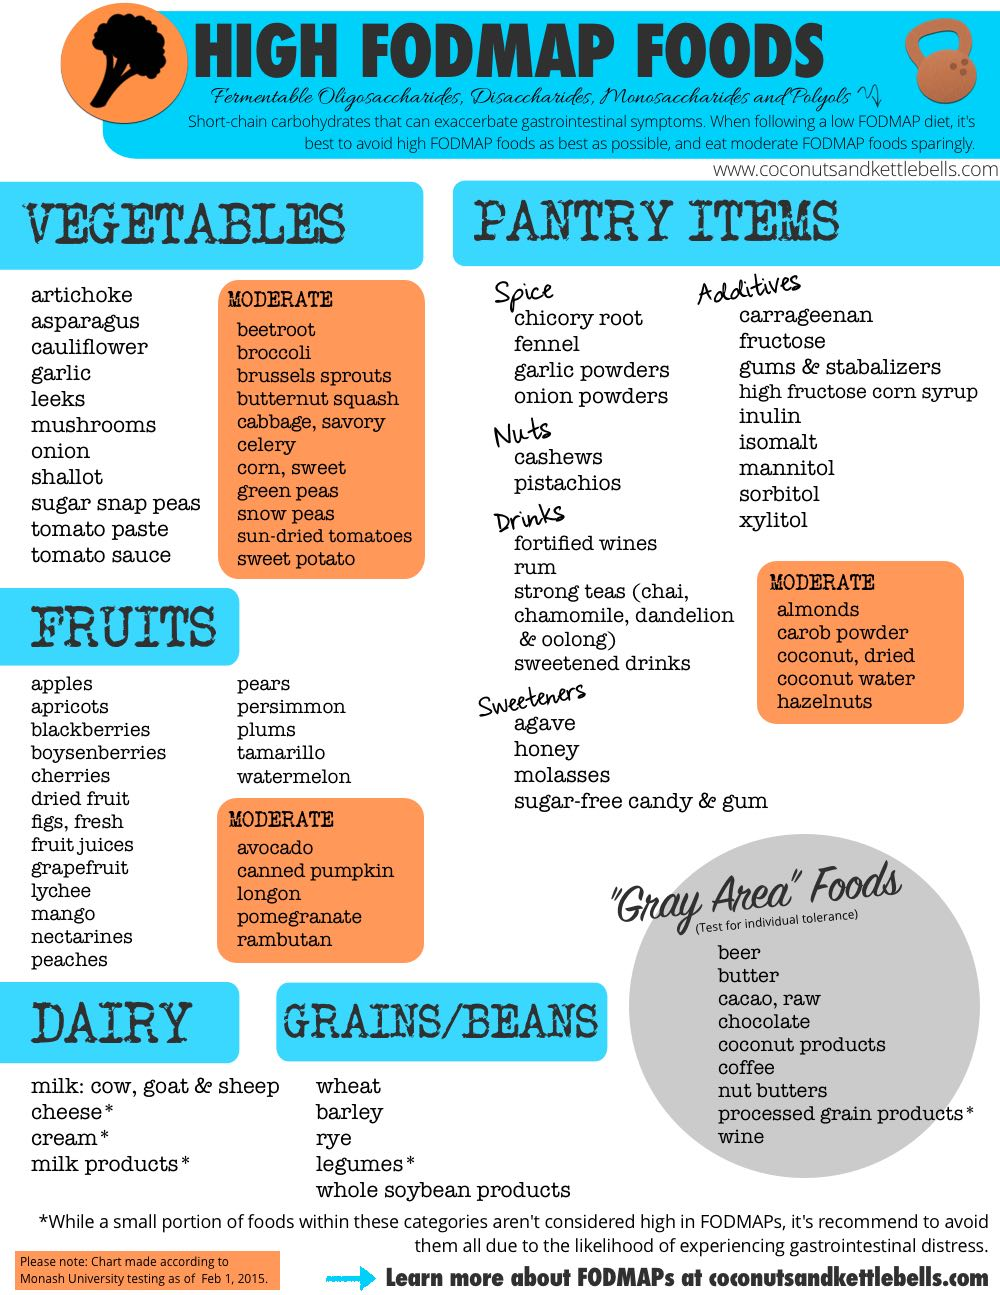 List of High FODMAP Foods - Coconuts & Kettlebells